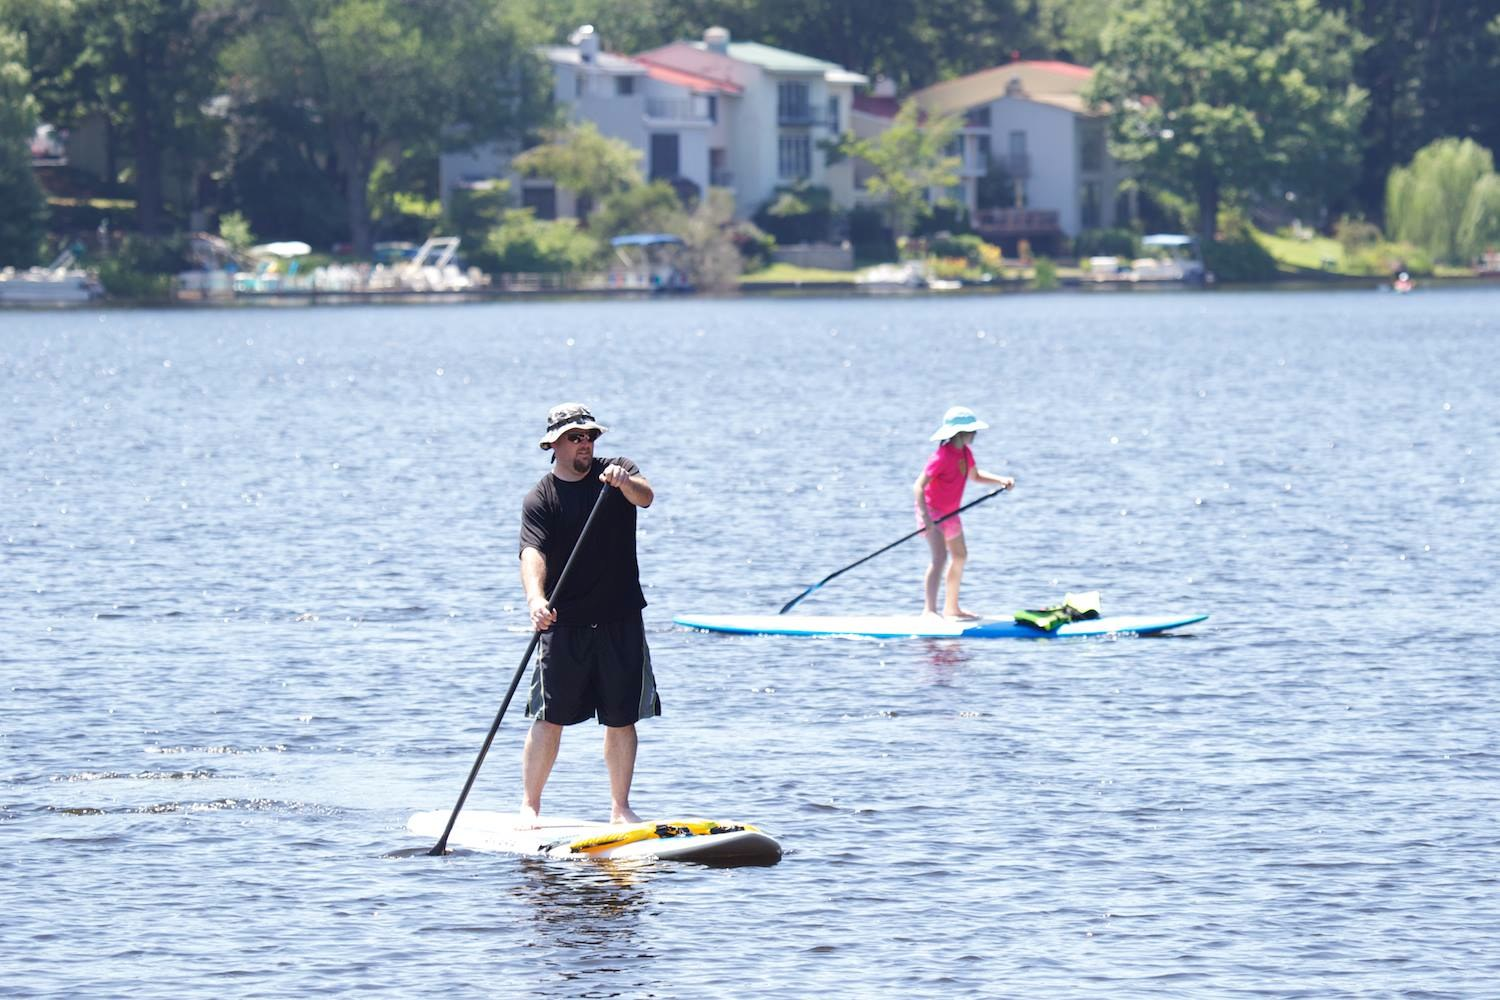 d4c9047f3076 Paddleboarding Likely to Expand to More Reston Lakes   Reston Now